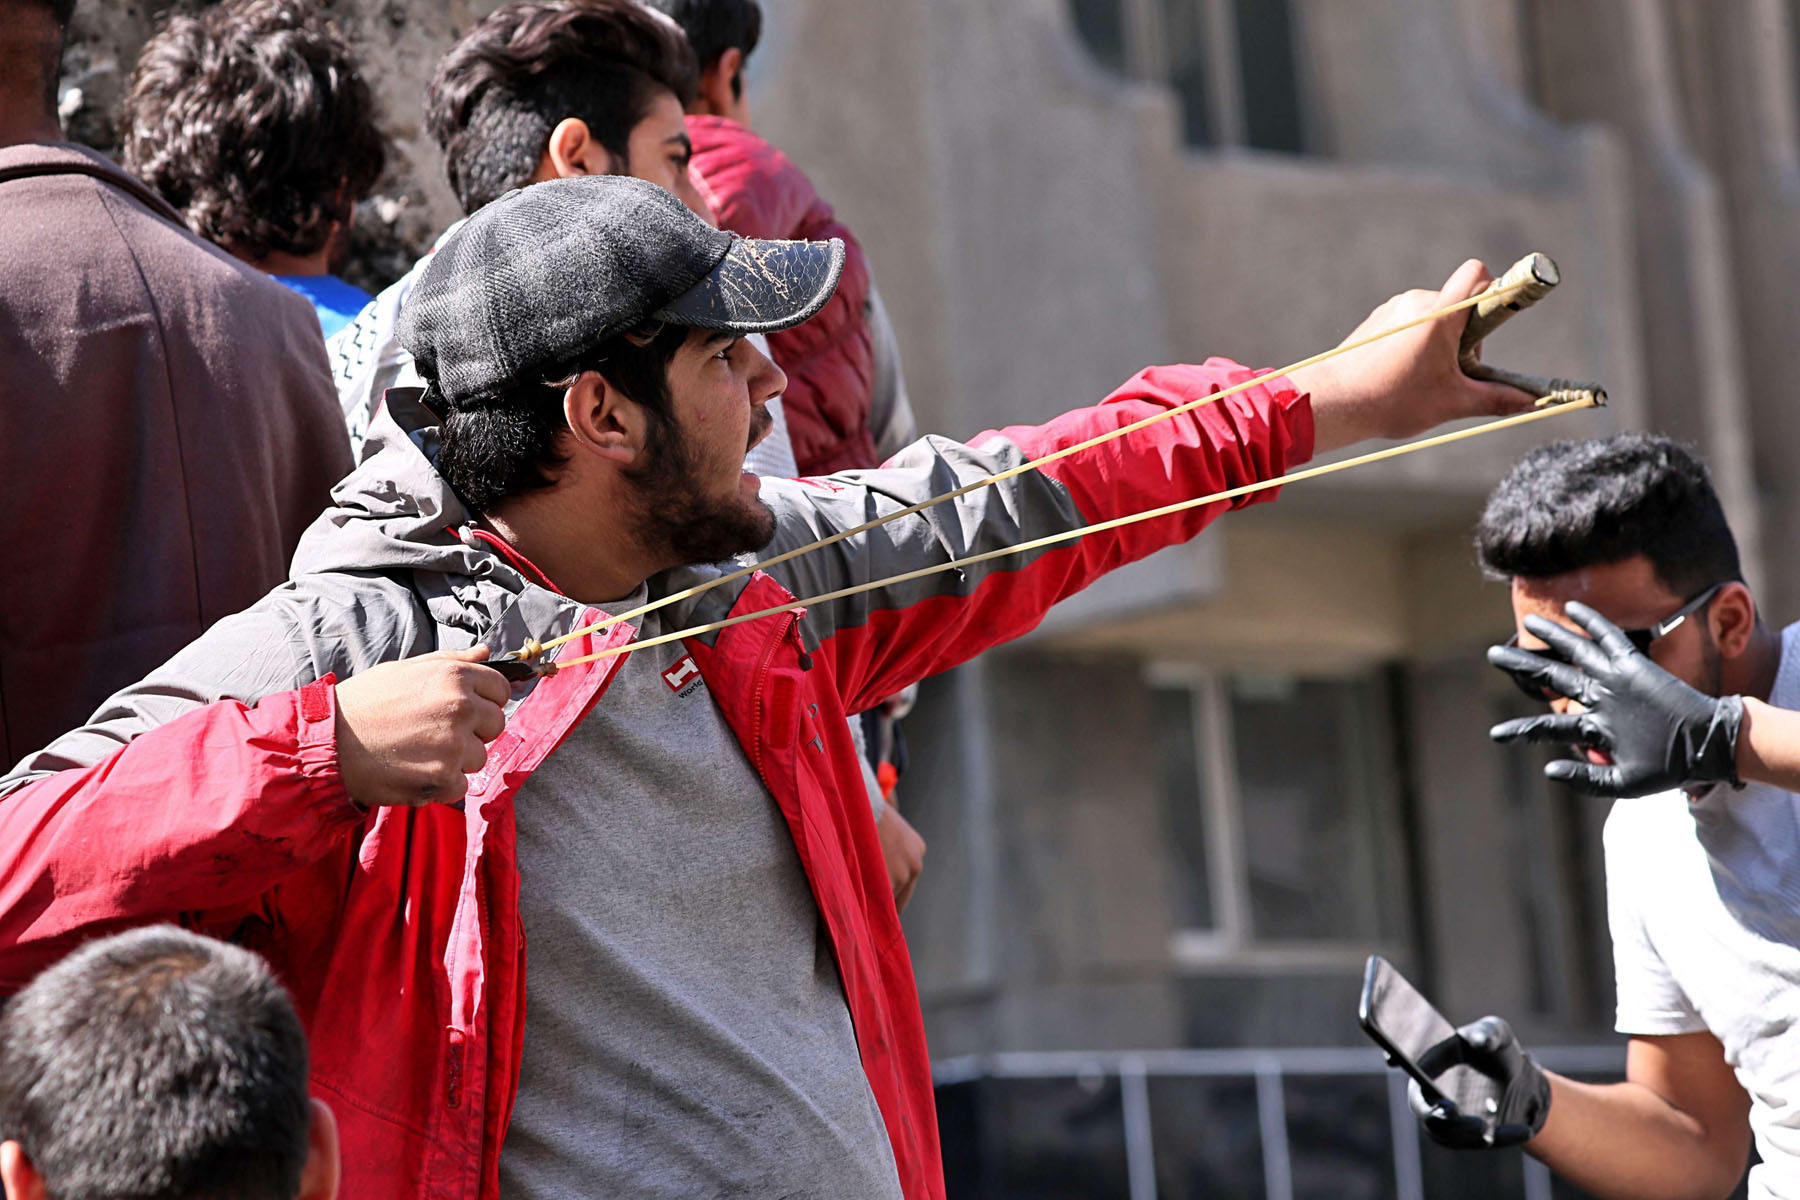 An anti-government protester uses a slingshot to fire a stone at security forces during clashes in Baghdad, March 2. (AP)